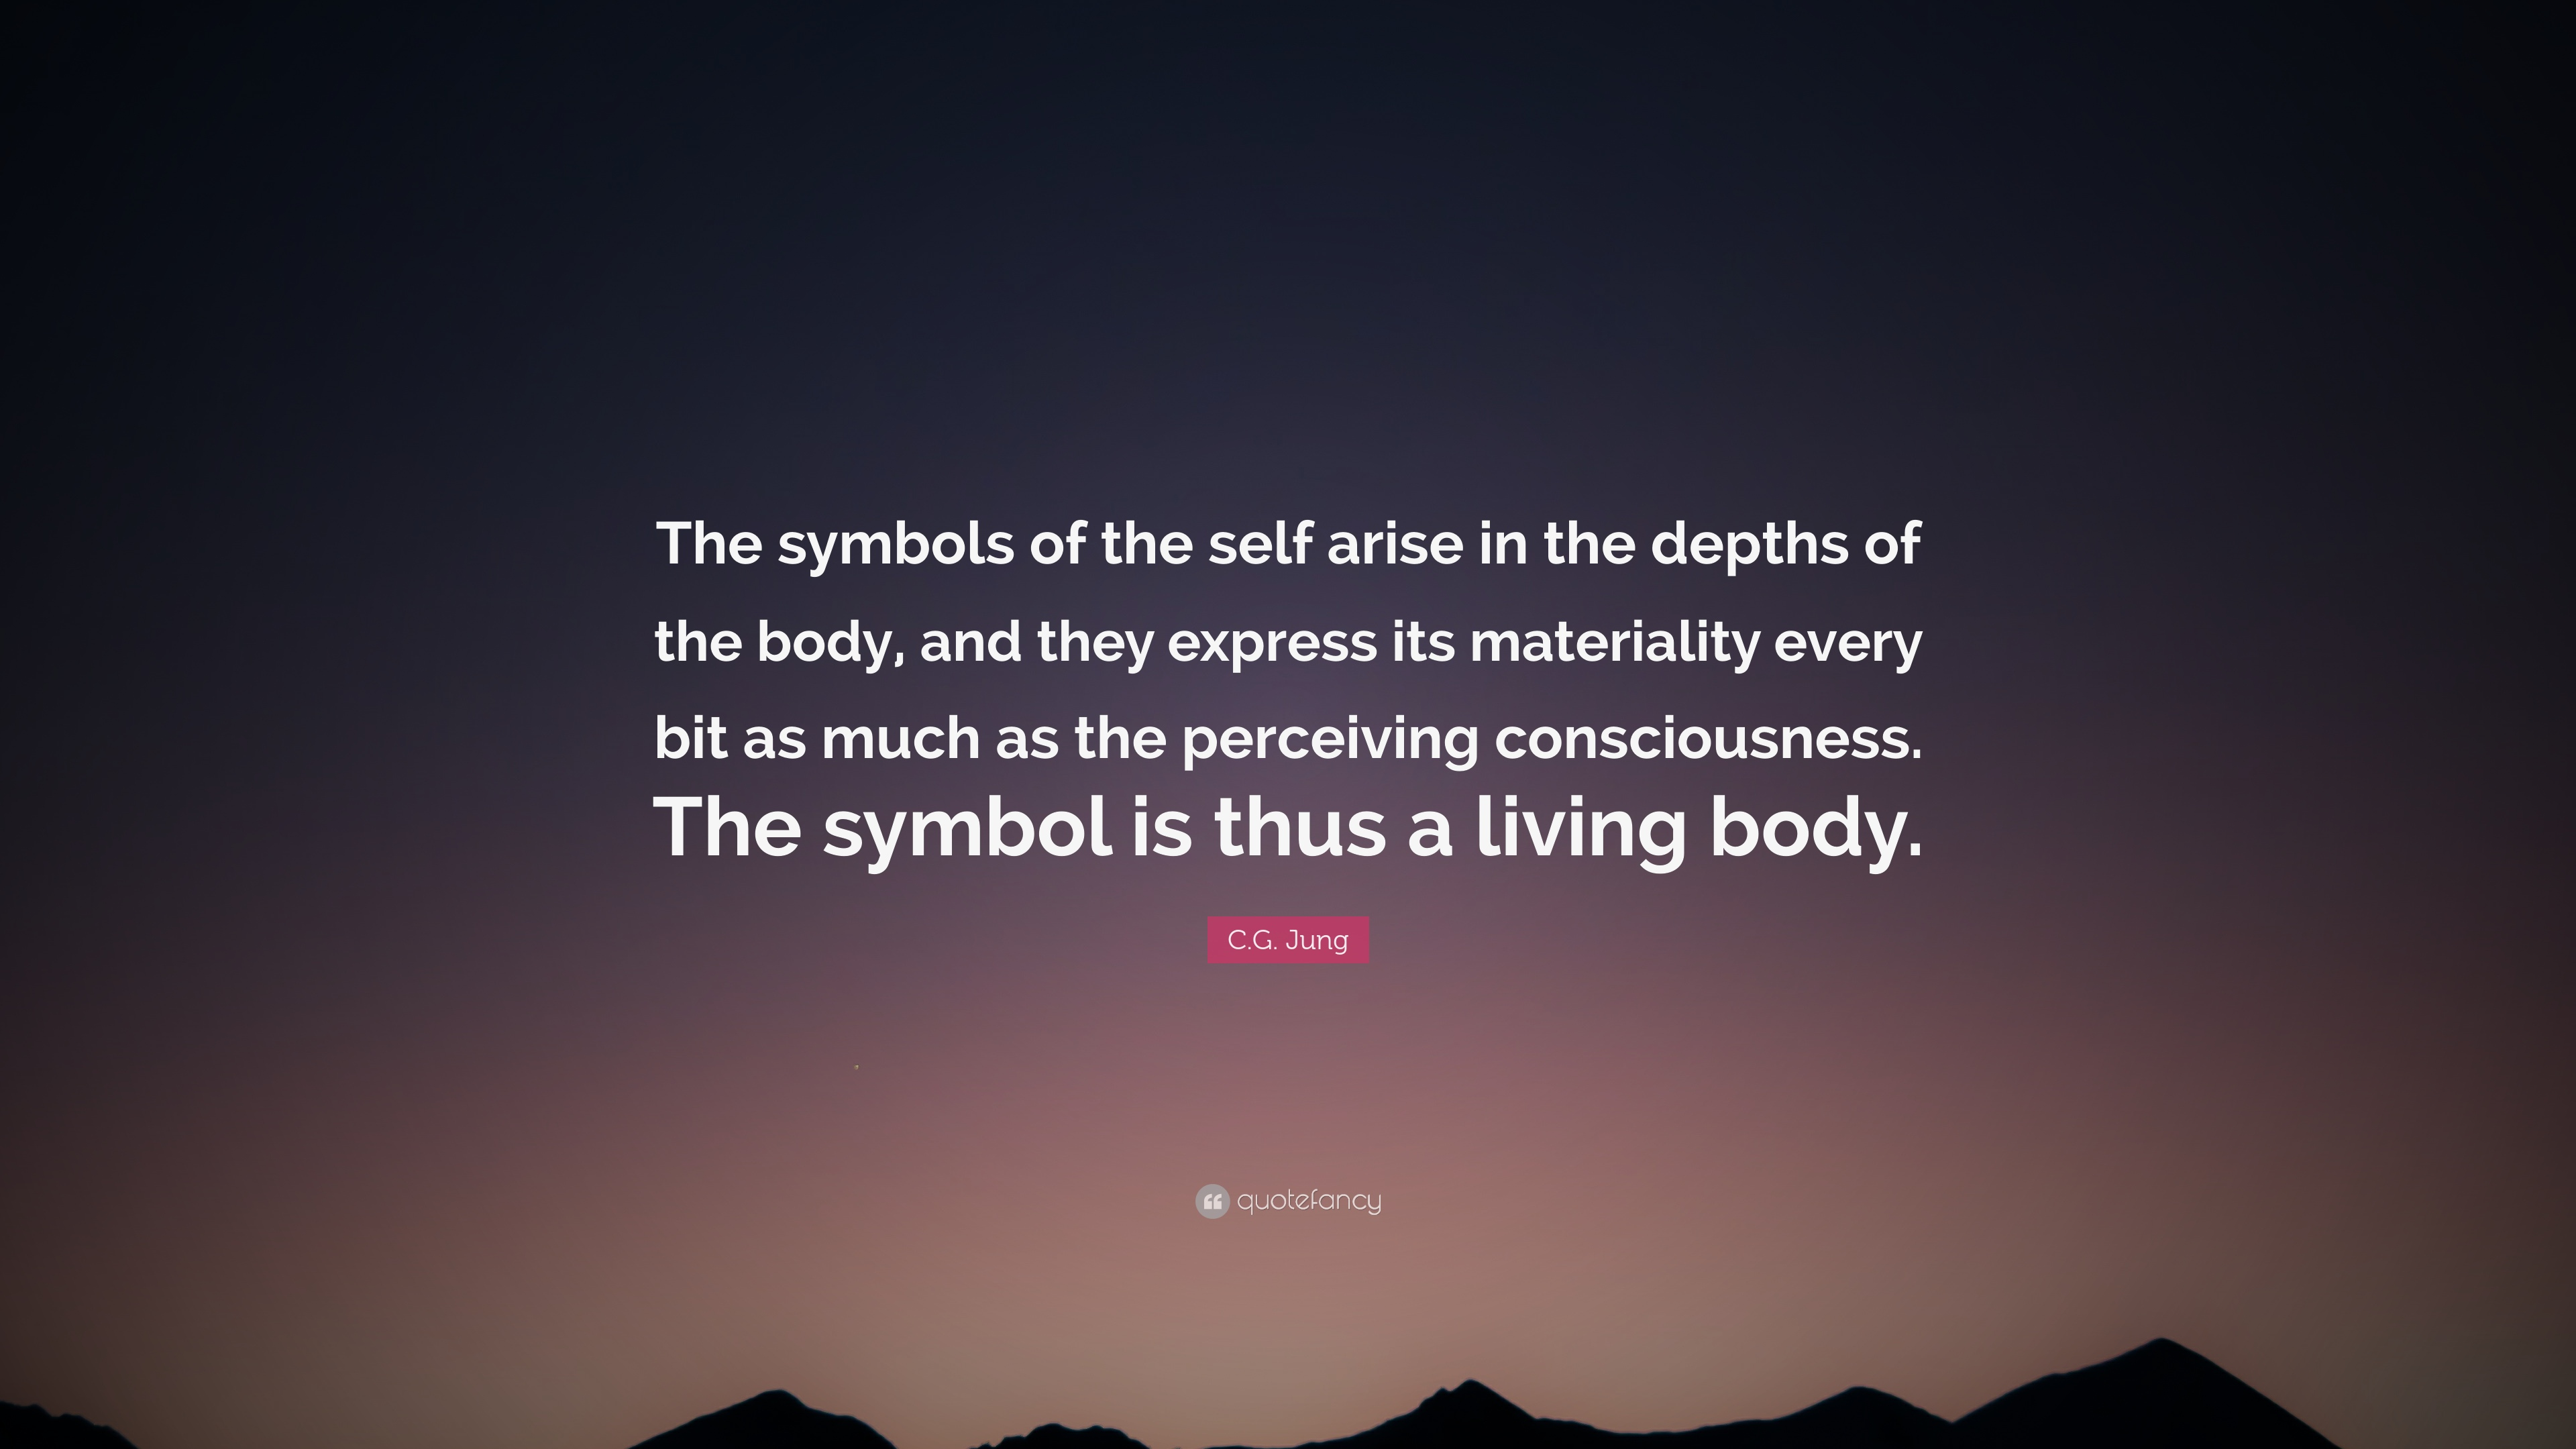 Cg Jung Quote The Symbols Of The Self Arise In The Depths Of The